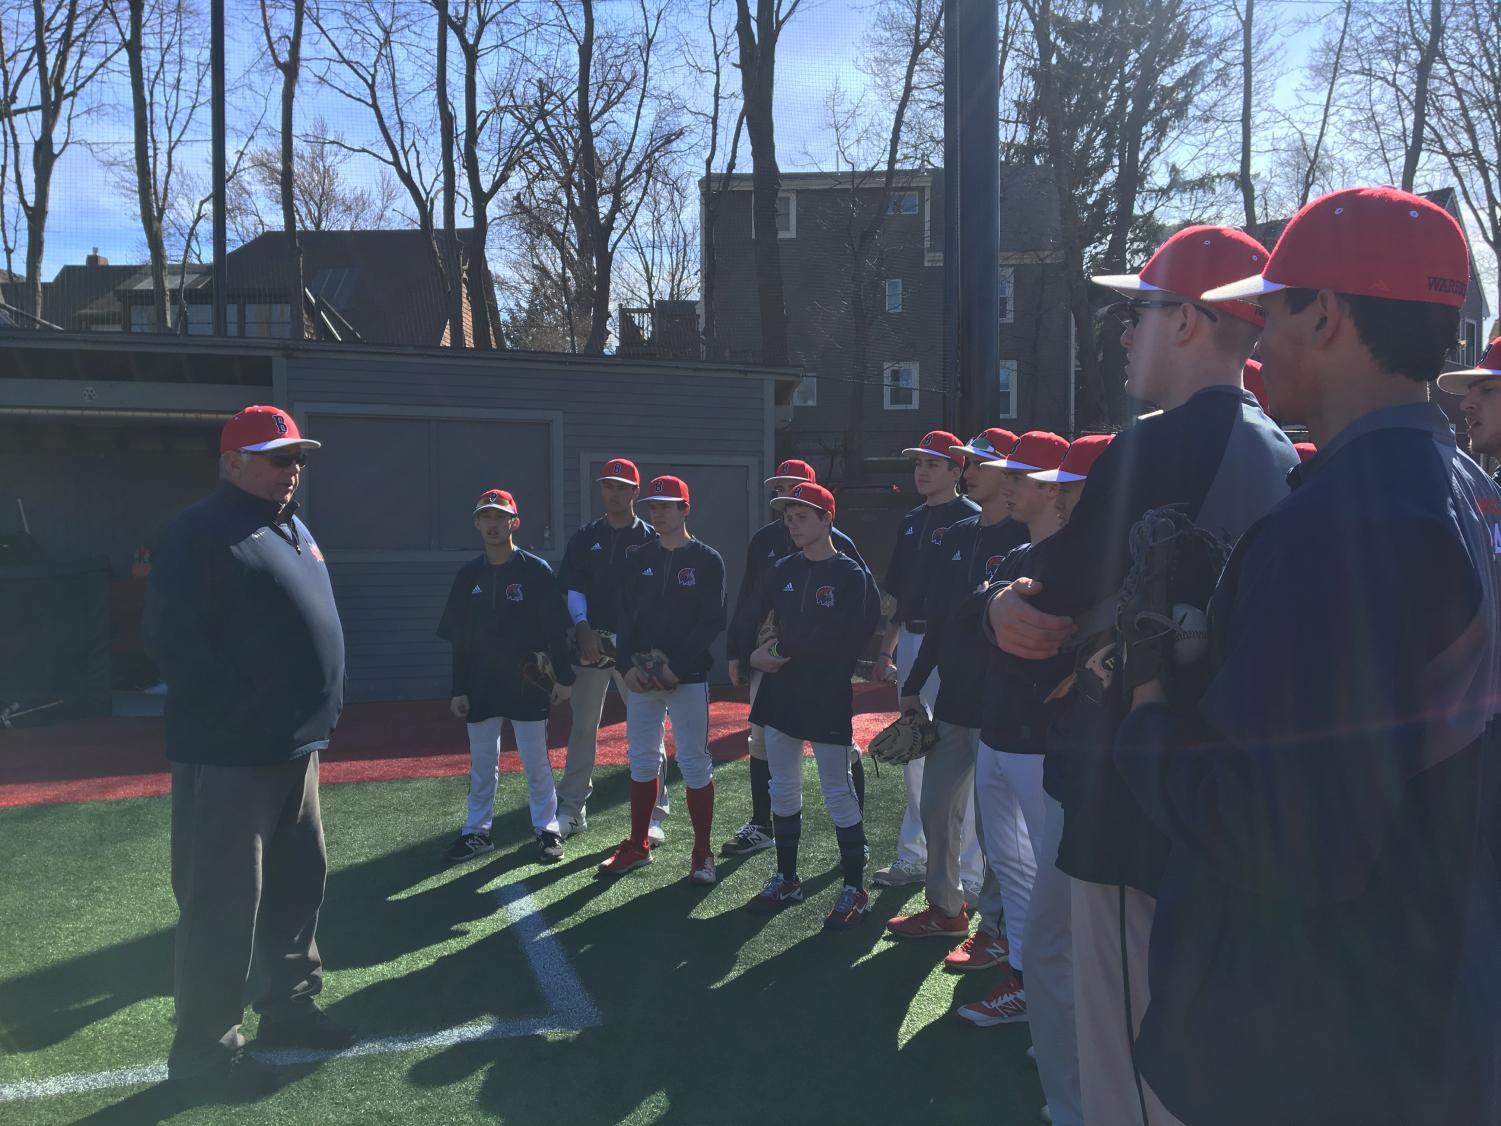 Varsity baseball coach Joe Campagna meets with his team before practice at Parsons Field. Campagna is now retiring after having won over 300 games in his 27 years of coaching.